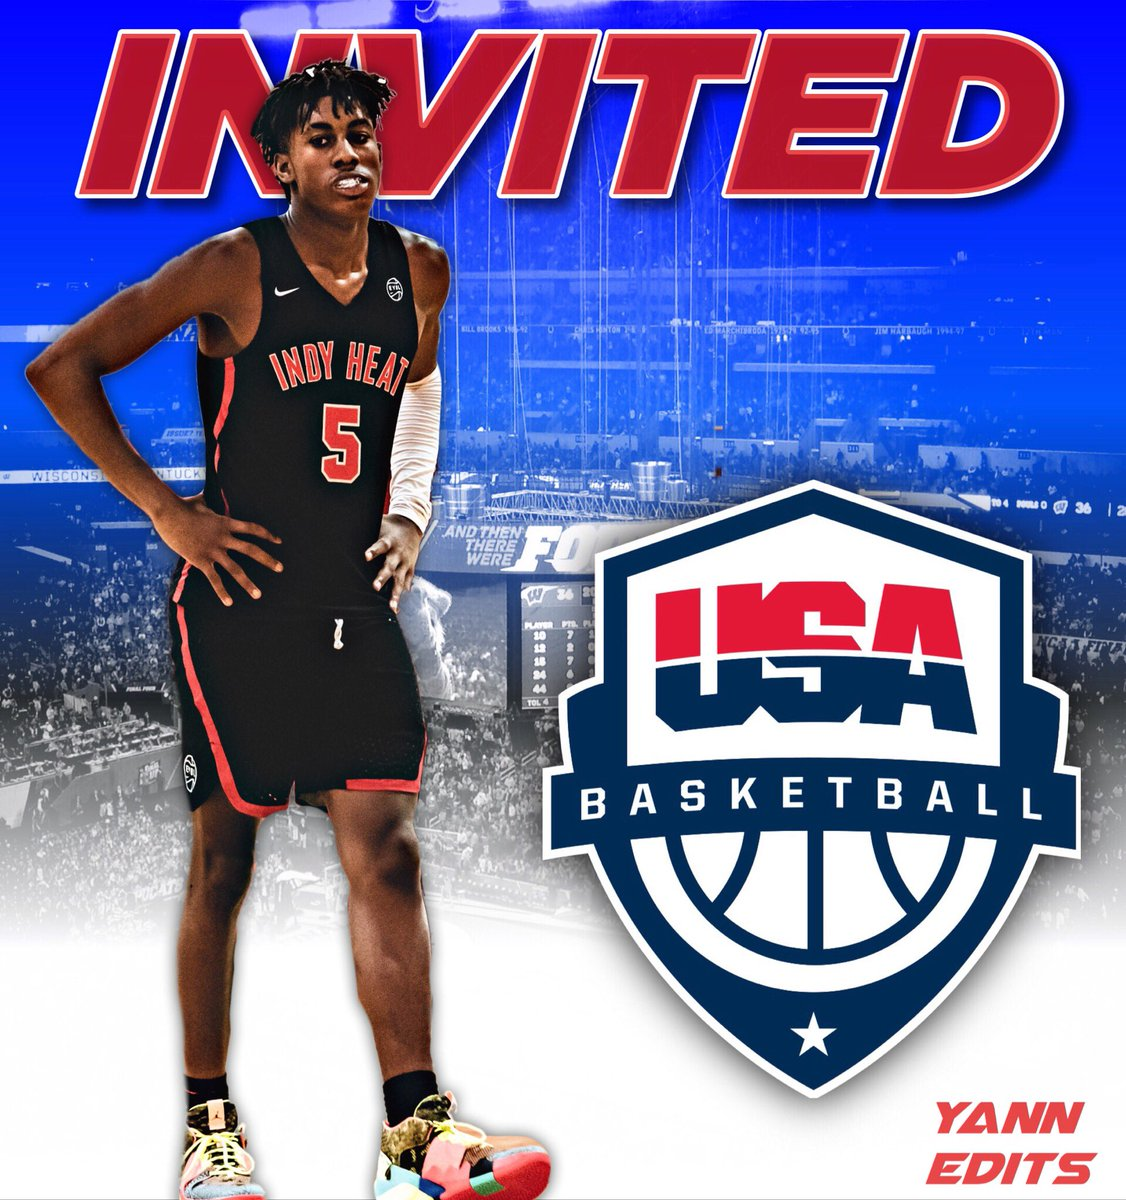 Dreamed of this, and can't wait to experience this opportunity. Blessed to be invited to USA Jr National team minicamp.